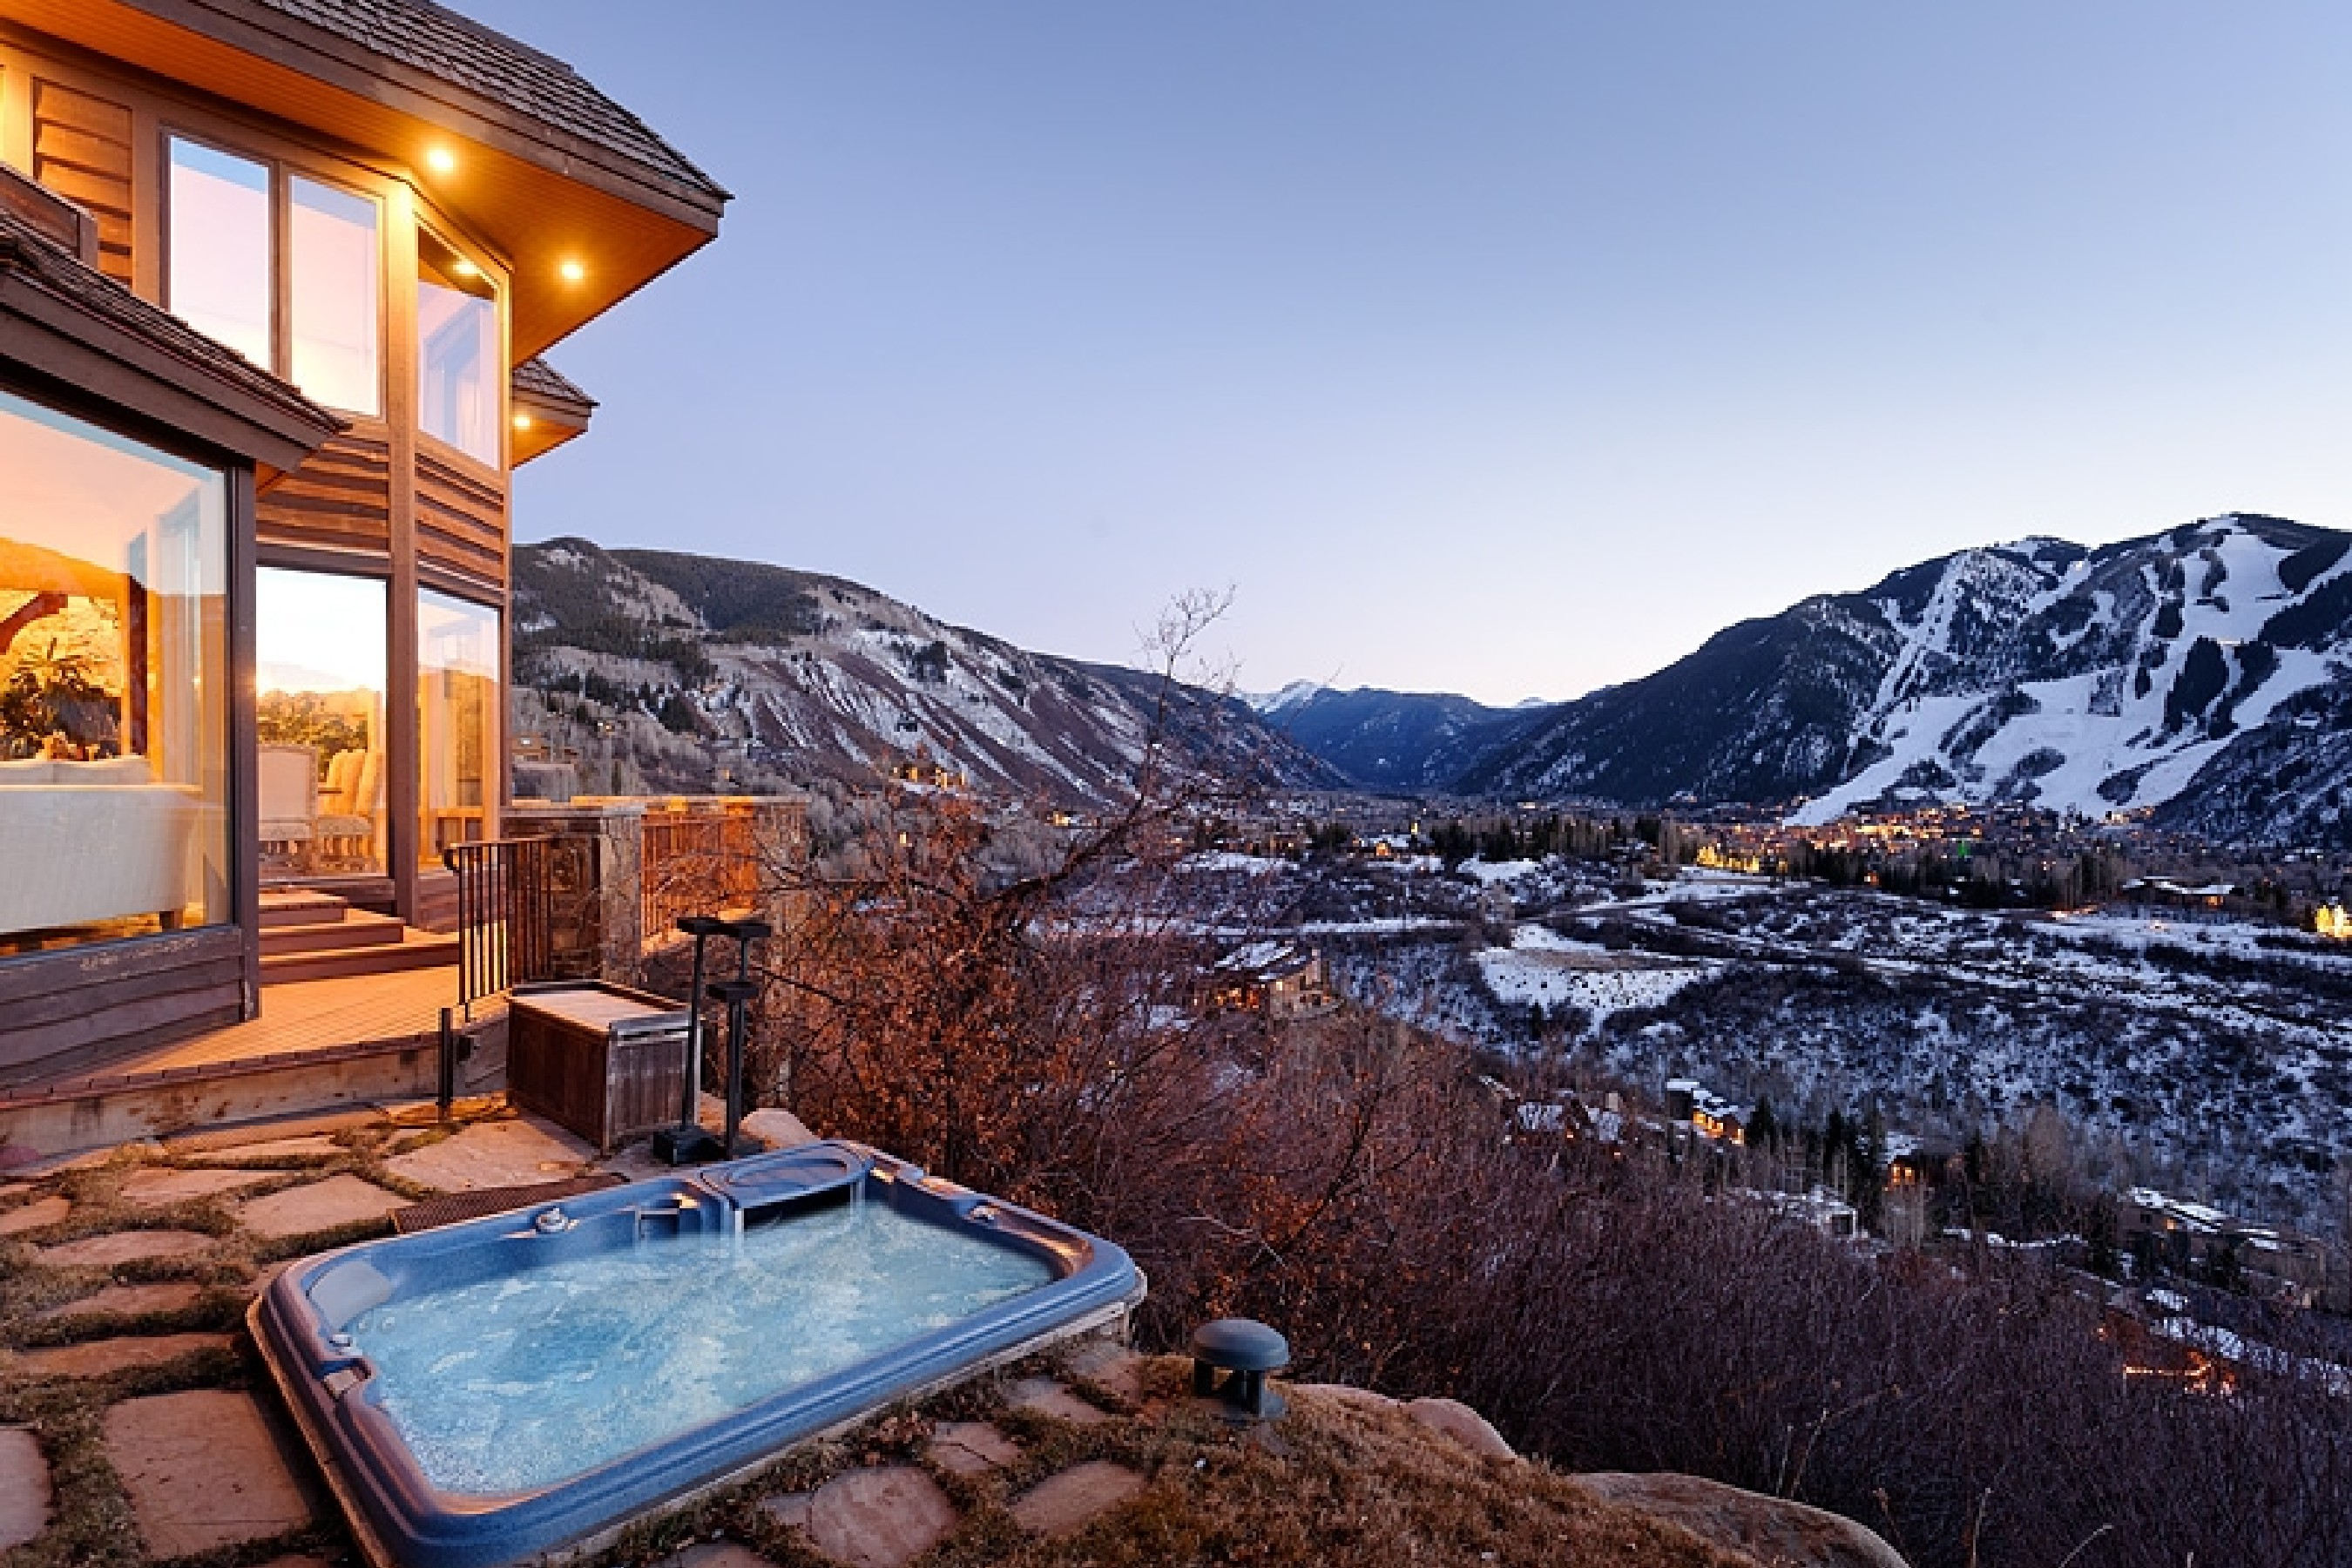 Single Family Home for Sale at Privacy and Views on Red Mountain 476 Wrights Road Aspen, Colorado, 81611 United States